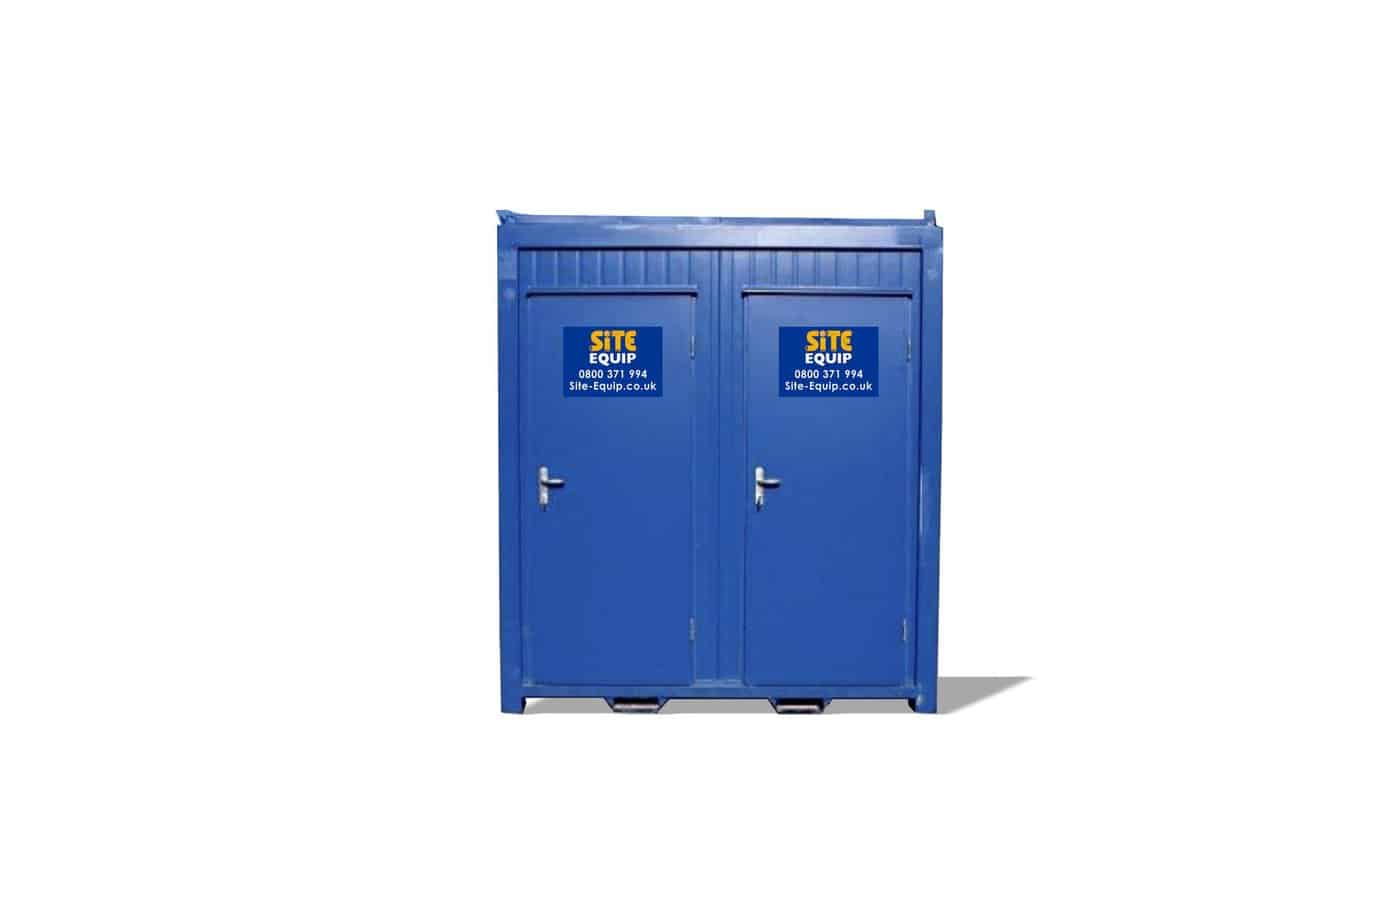 1 1 Static Mains Toilet Block Call Site Equip On 0800 371 994